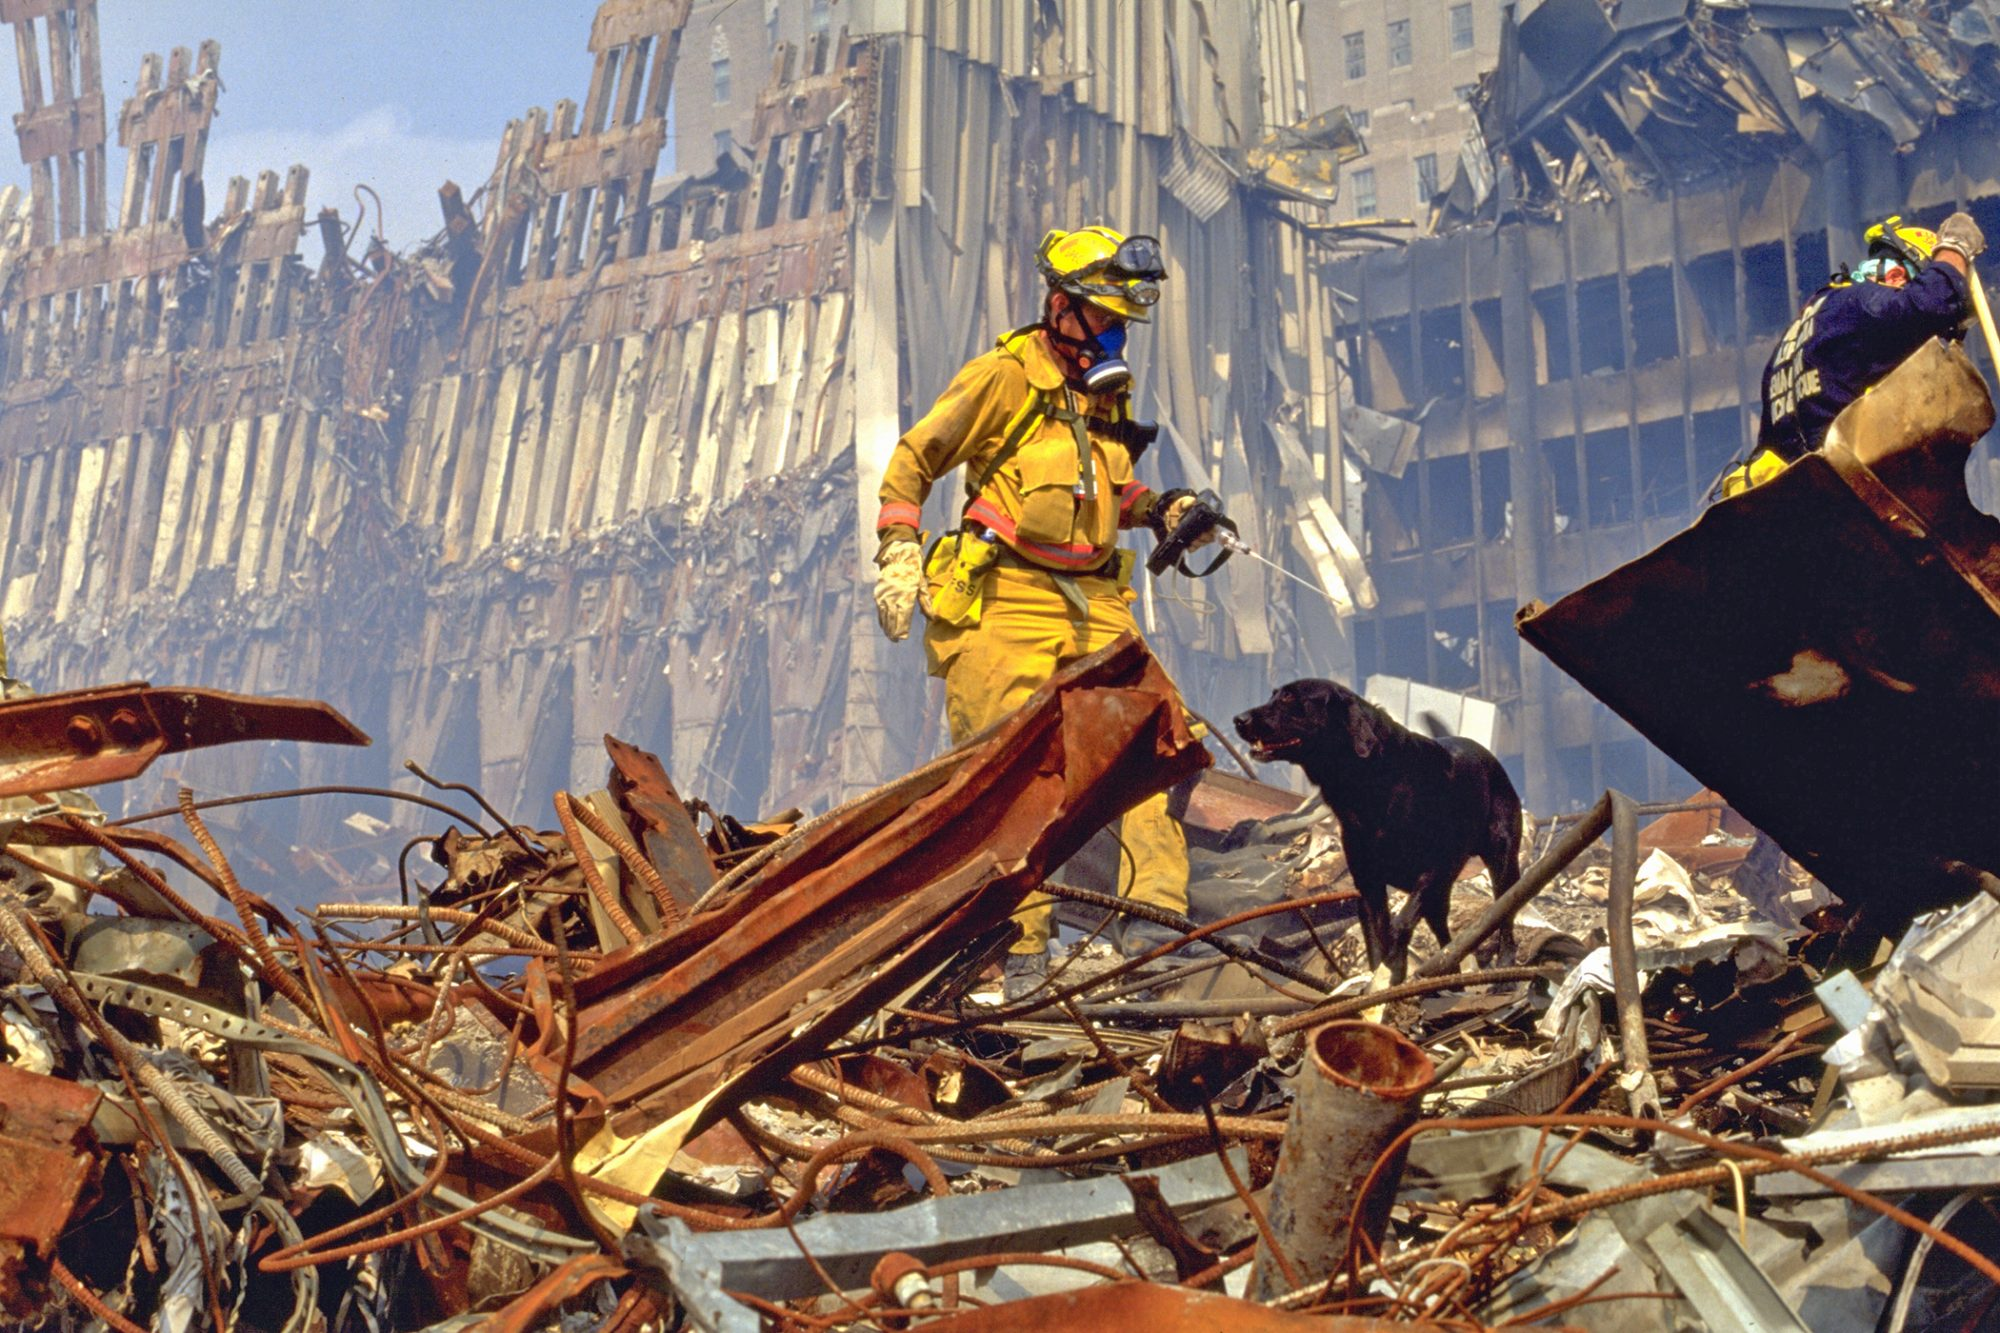 9/11 service dog standing in rubble with FEMA rescuer in yellow coat